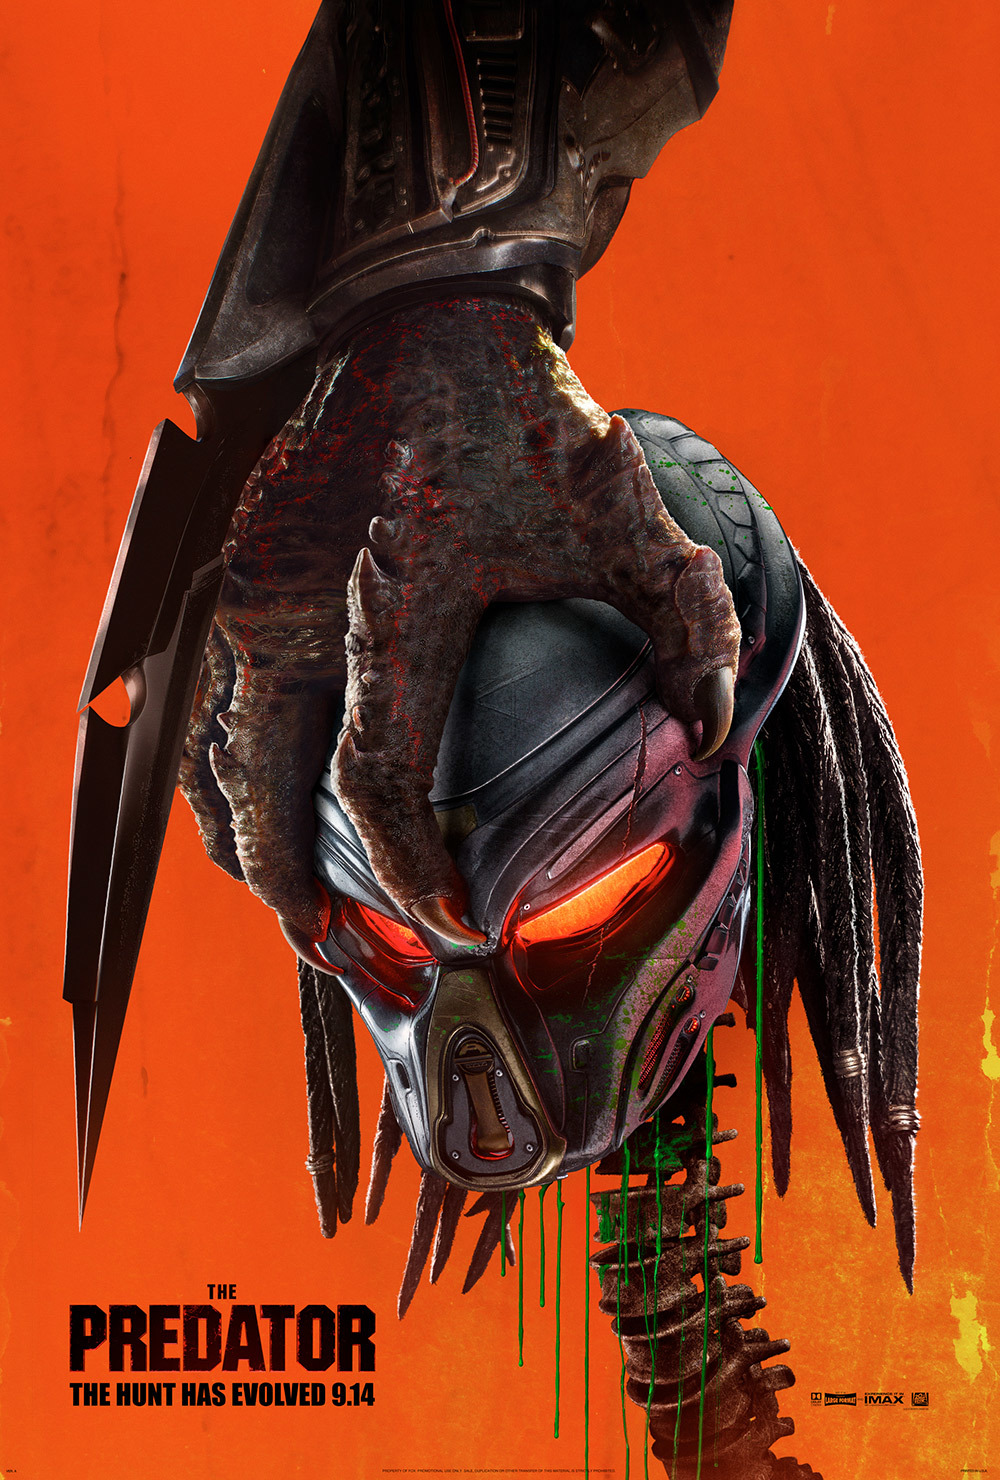 The Predator (2018) - Directed by: Shane BlackStarring: Boyd Holbrook, Trevante Rhodes, Keegan-Michael Key, Olivia Munn, Sterling K Brown, Thomas Jane, Alfie Allen, Yvonne StrahovskiRated: R for Strong Bloody Violence, Language Throughout, and Crude Sexual ReferencesRunning Time: 1 h 47 mTMM Score: 1.5 stars out of 5STRENGTHS: Some Dialogue, Some ActionWEAKNESSES: Direction, Lack of Story, Characters, Writing